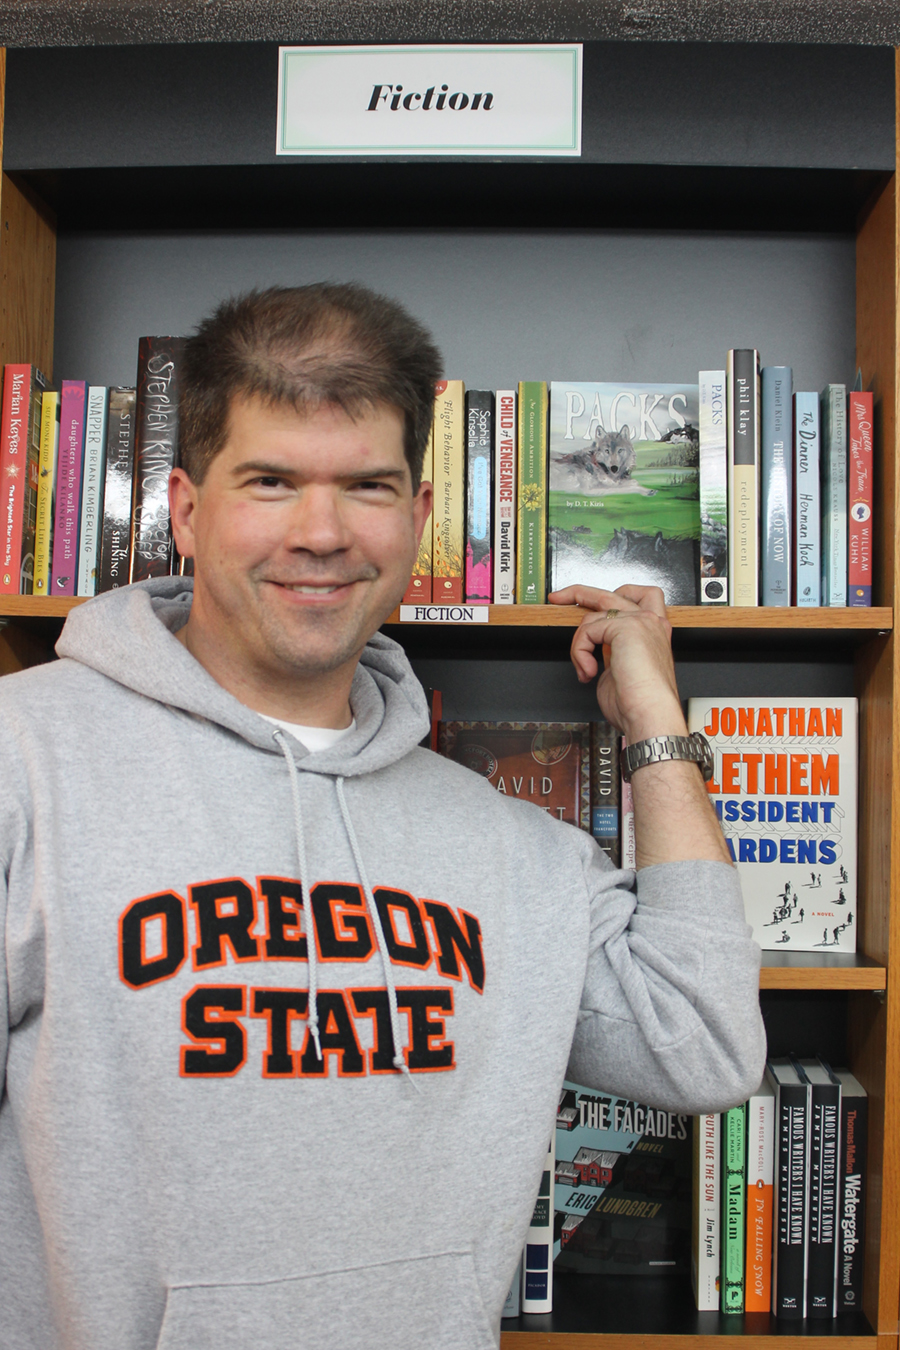 Ed Wollert in OSU sweater at the bookstore